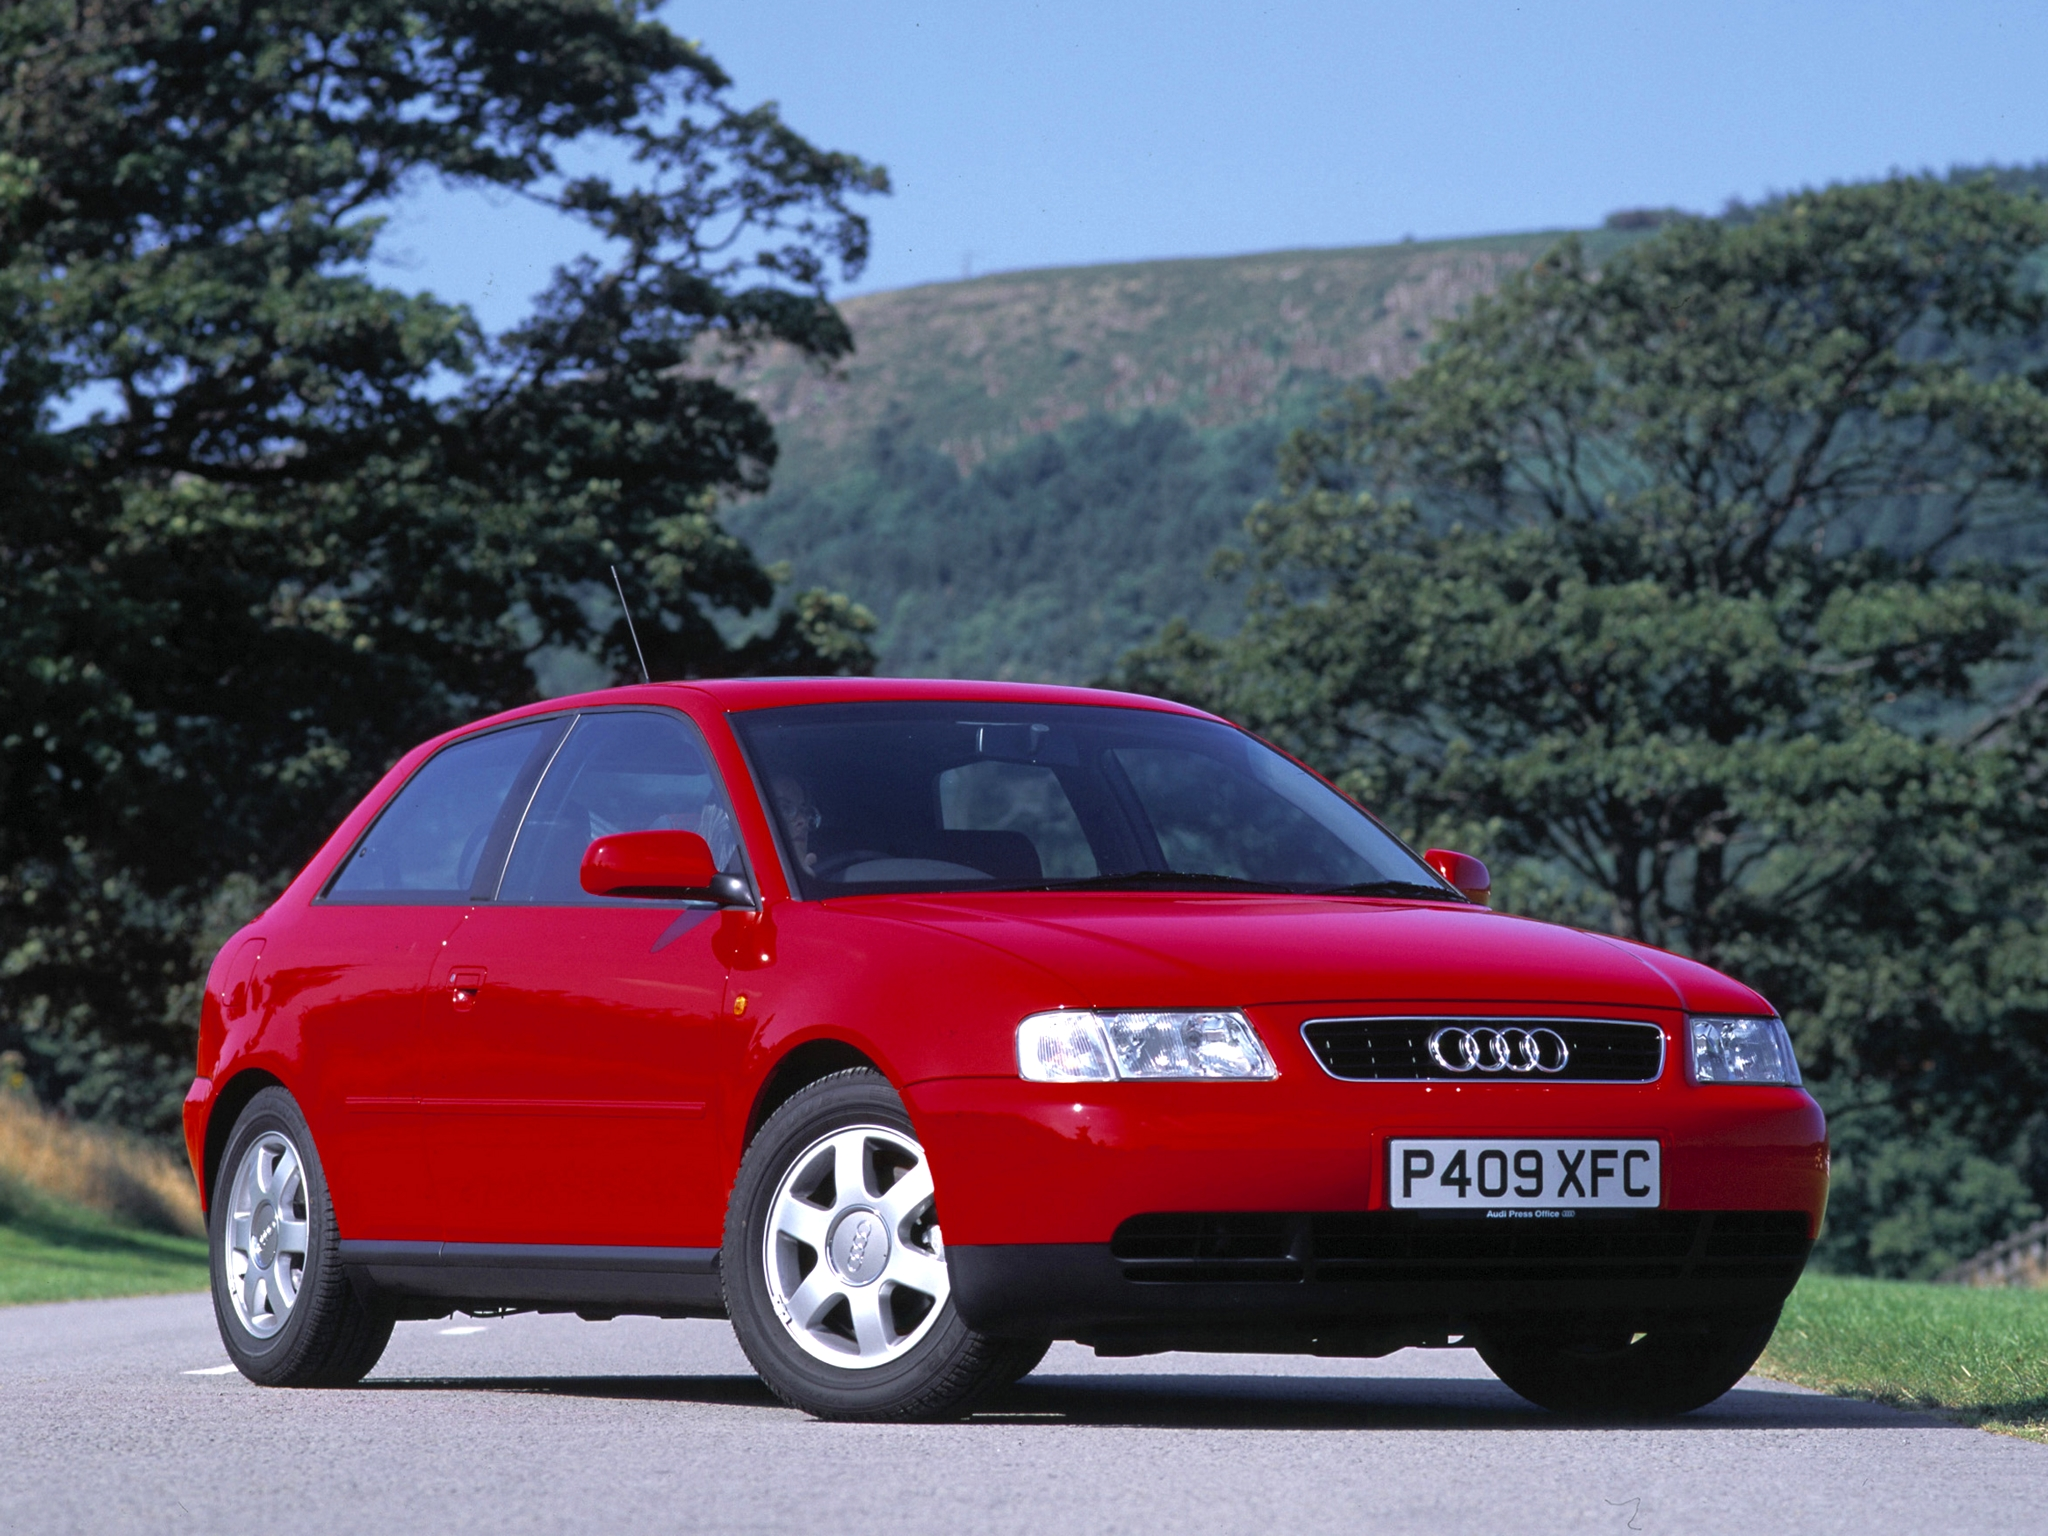 Trailblazer the first audi a3 8l andrew everett takes a close look at the first series of a3s